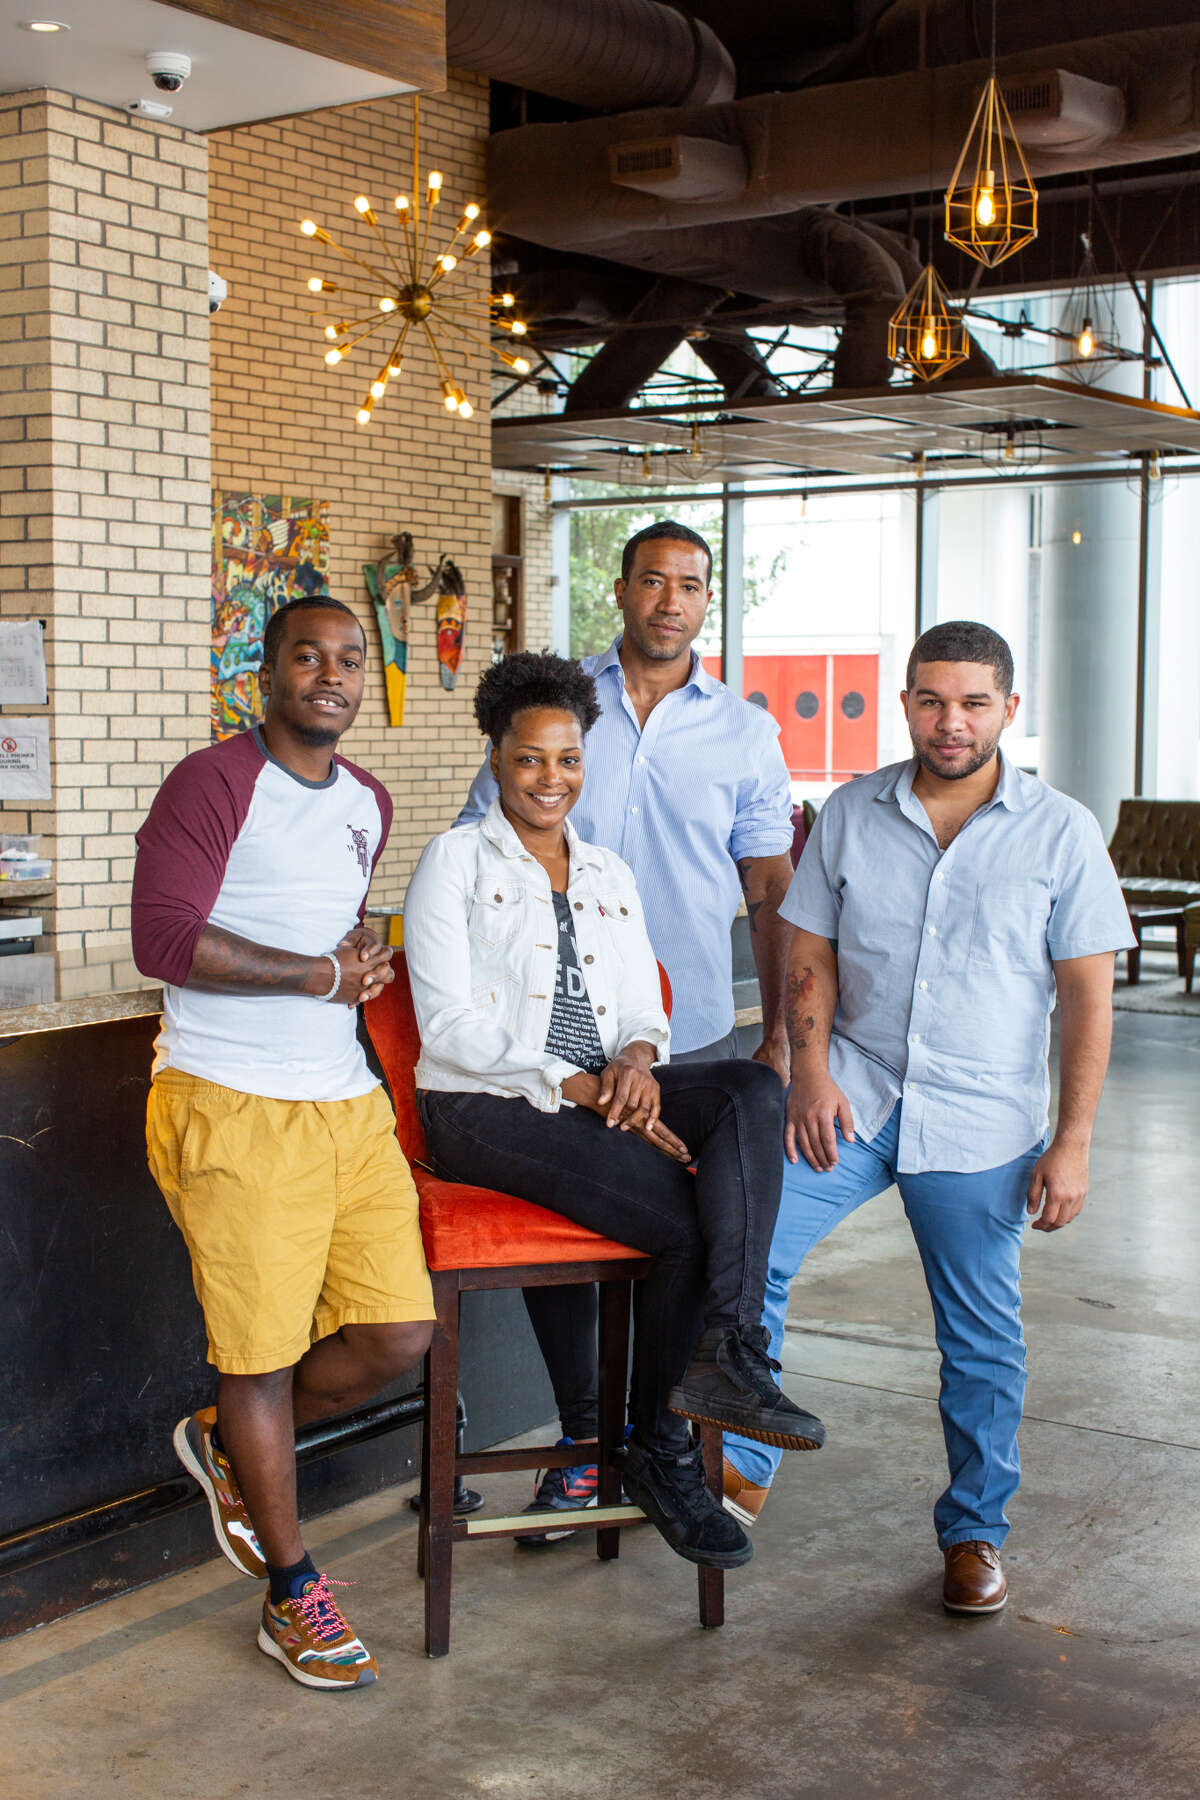 Four Houston chefs are collaborating on a dinner series aimed at bringing awareness to food deserts in Houston (areas where there is minimal access to fresh food markets or commercial grocery stores). The project is called Food Apartheid Dinner Series (FADS), and will kick off Sept. 4. Chefs include Jonny Rhodes of Indigo, Dawn Burrell of Kulture, Chris Williams of Lucille's and Dominick Lee of Poitin.